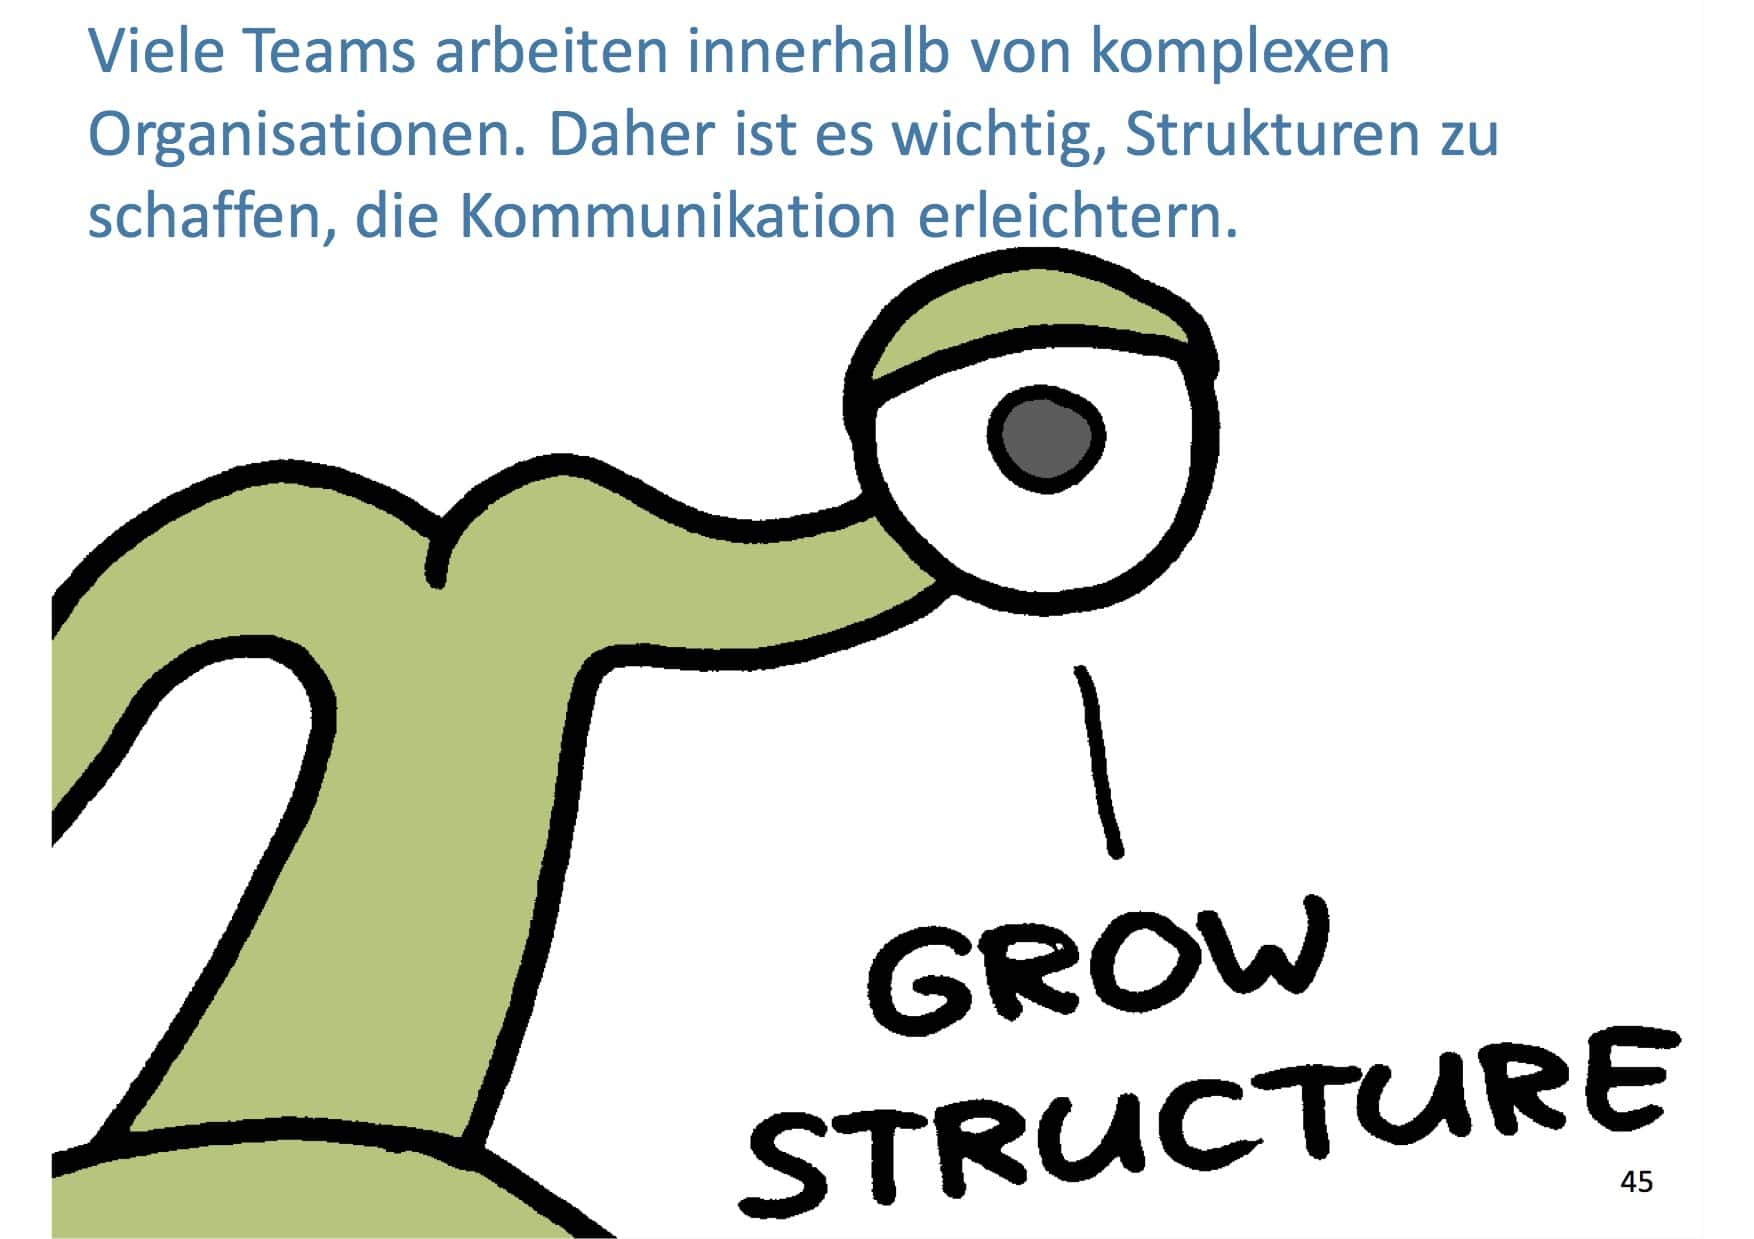 Management 3.0 GrowStructure